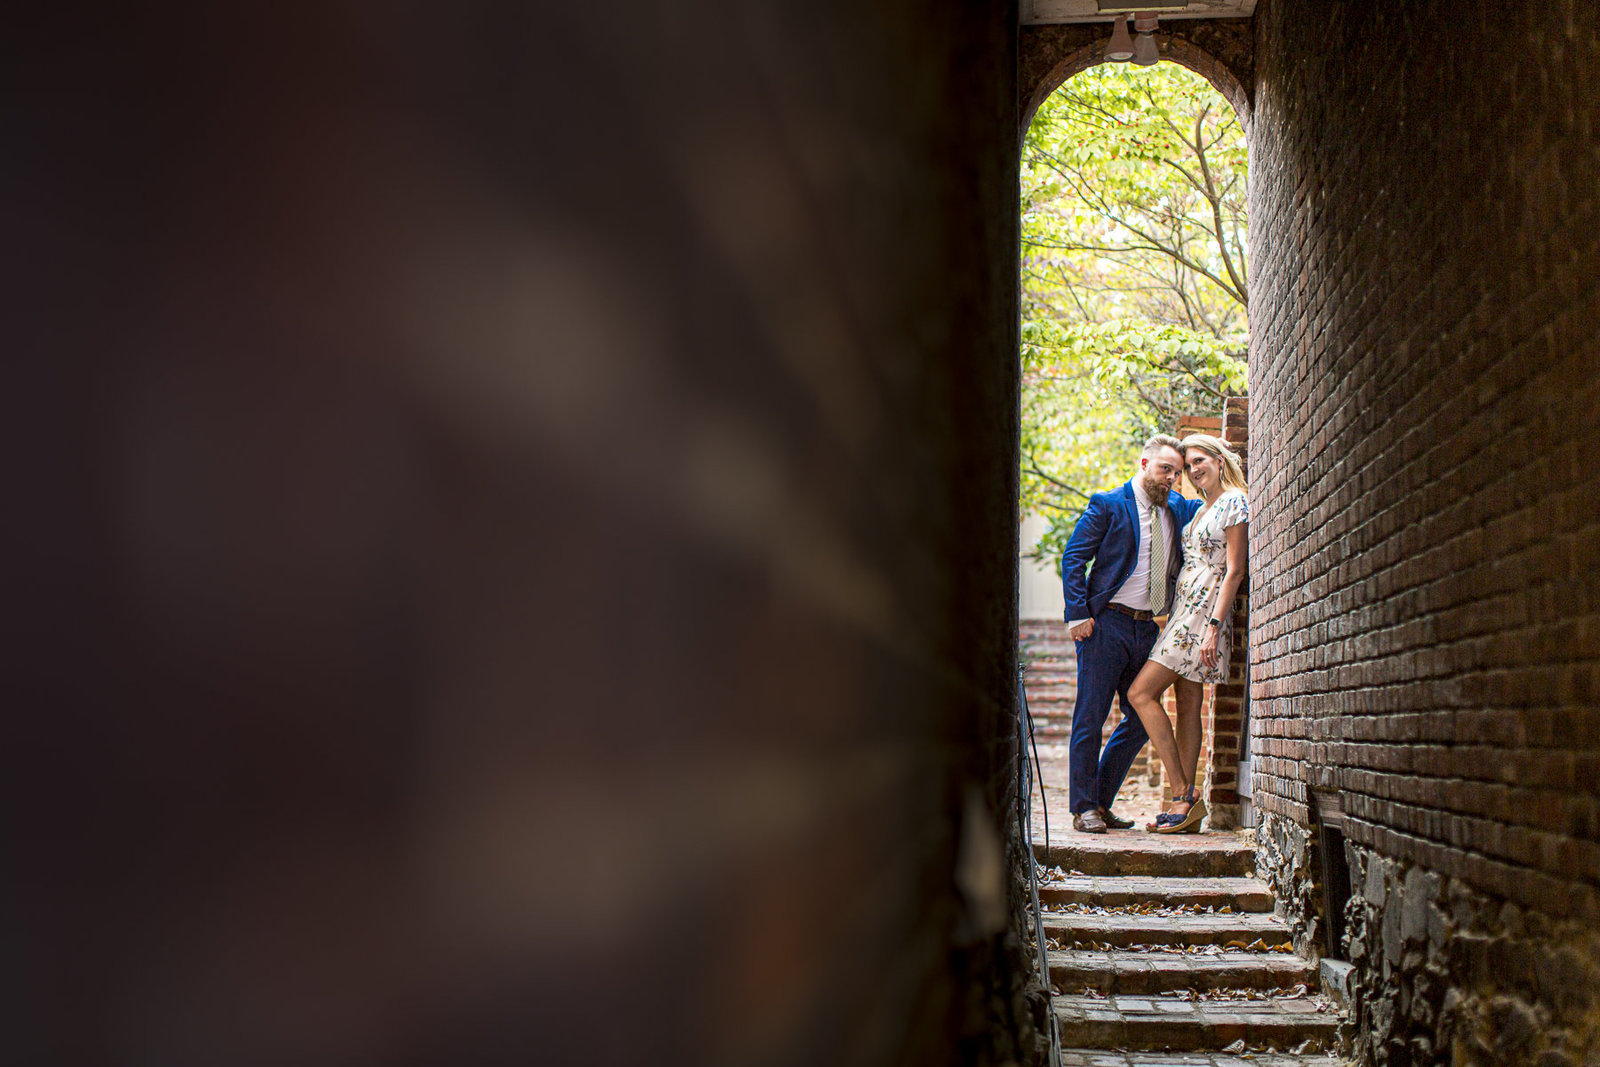 old-town-alexandria-va-engagement-andrew-morrell-4